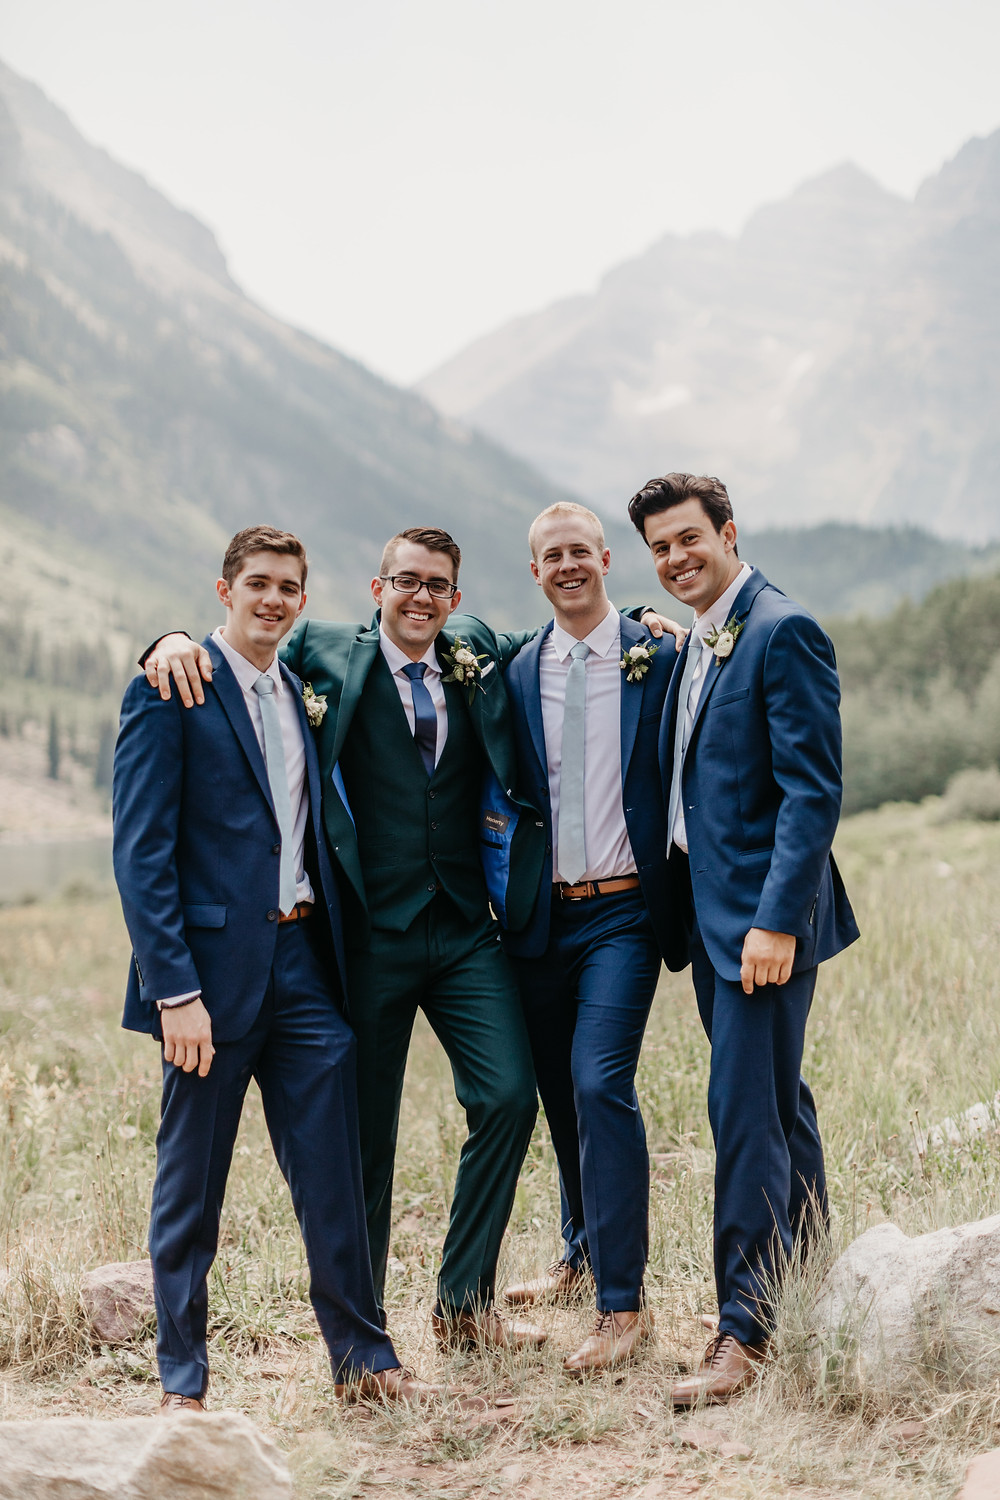 Mallory & David Aspen Elopement - Emma Lea Floral- Our Two Hearts Photography - Maroon Bells - Aspen Wedding - Denver Colorado Fine Art Floral Design - Luxury Wedding and Event Florist - Anemone | Rose  | Astrantia | Hops | Jasmine | White, Ivory, Navy | Mountain Wedding | Organic | Groomsman | Boutonnieres |